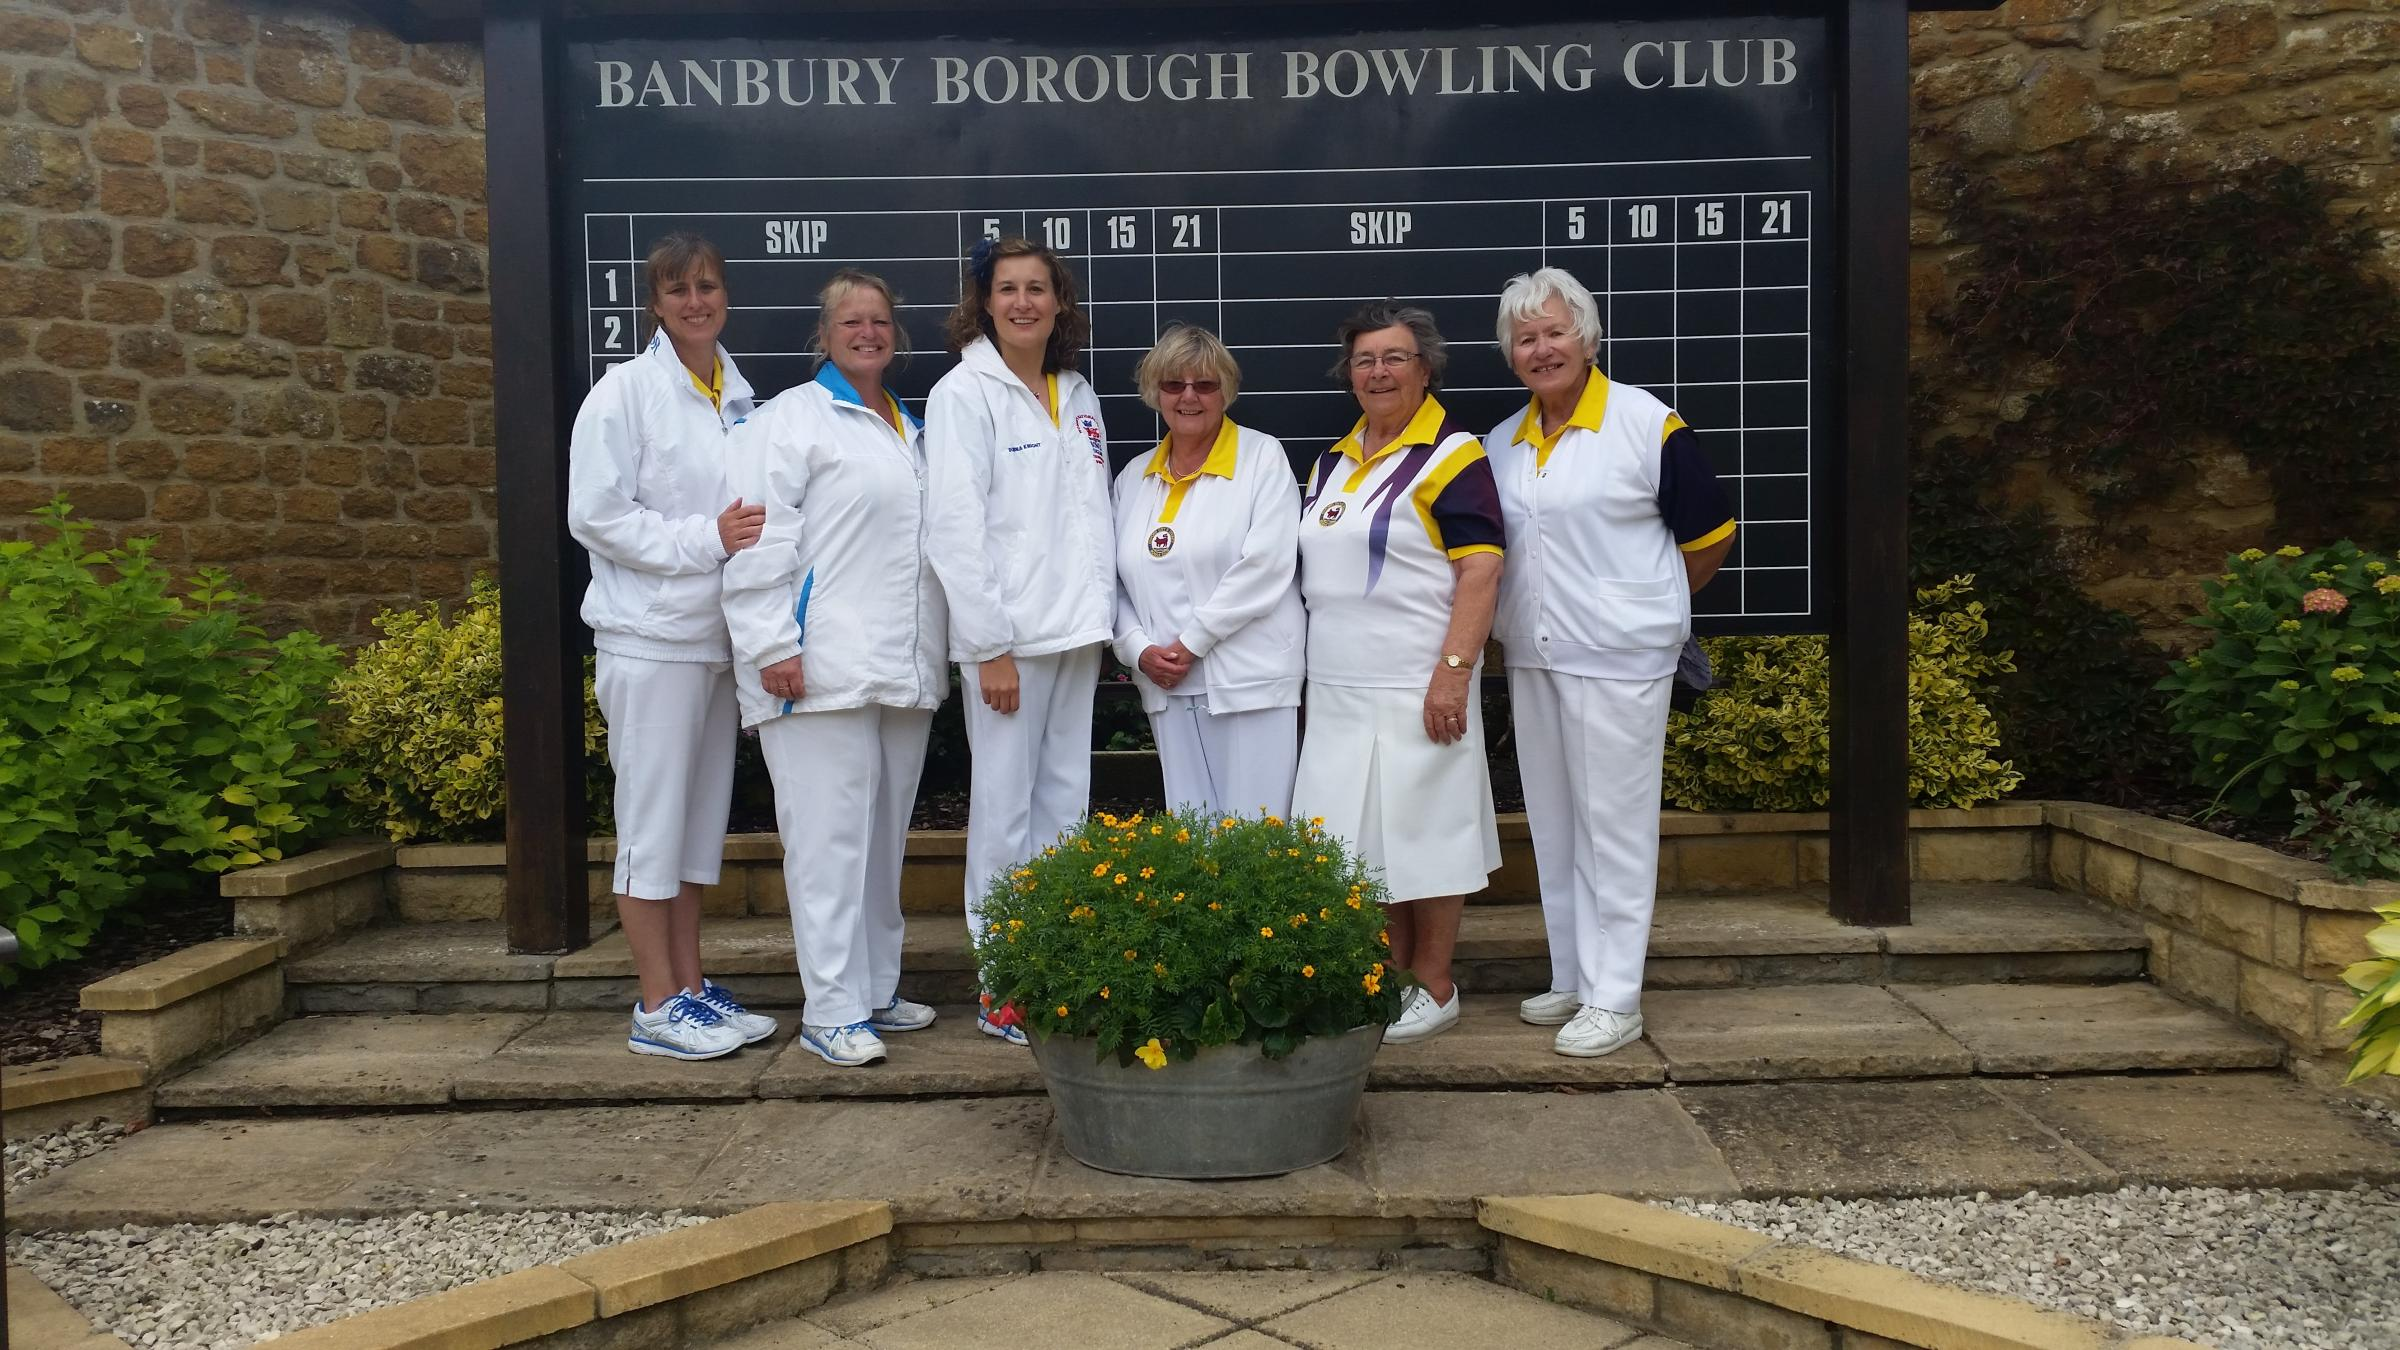 The victorious triples teams. From left: Katherine Hawes, Gail Gilkes, Donna Knight, Jacky Gray, Margaret Stacey and Vicky Harrison